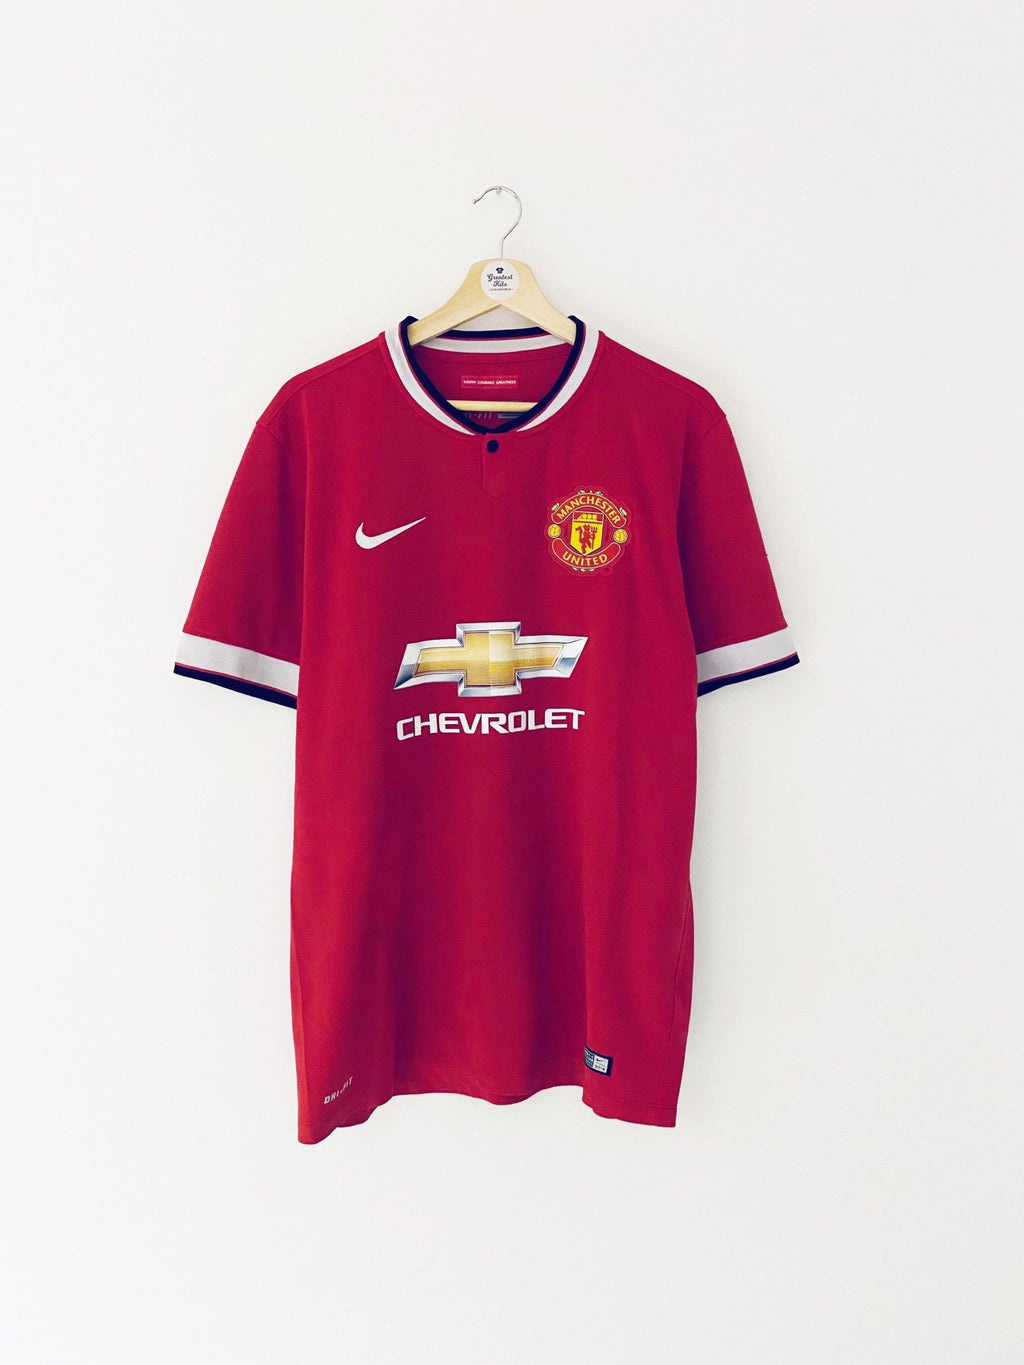 2014/15 Manchester United Home Shirt (L) 9/10